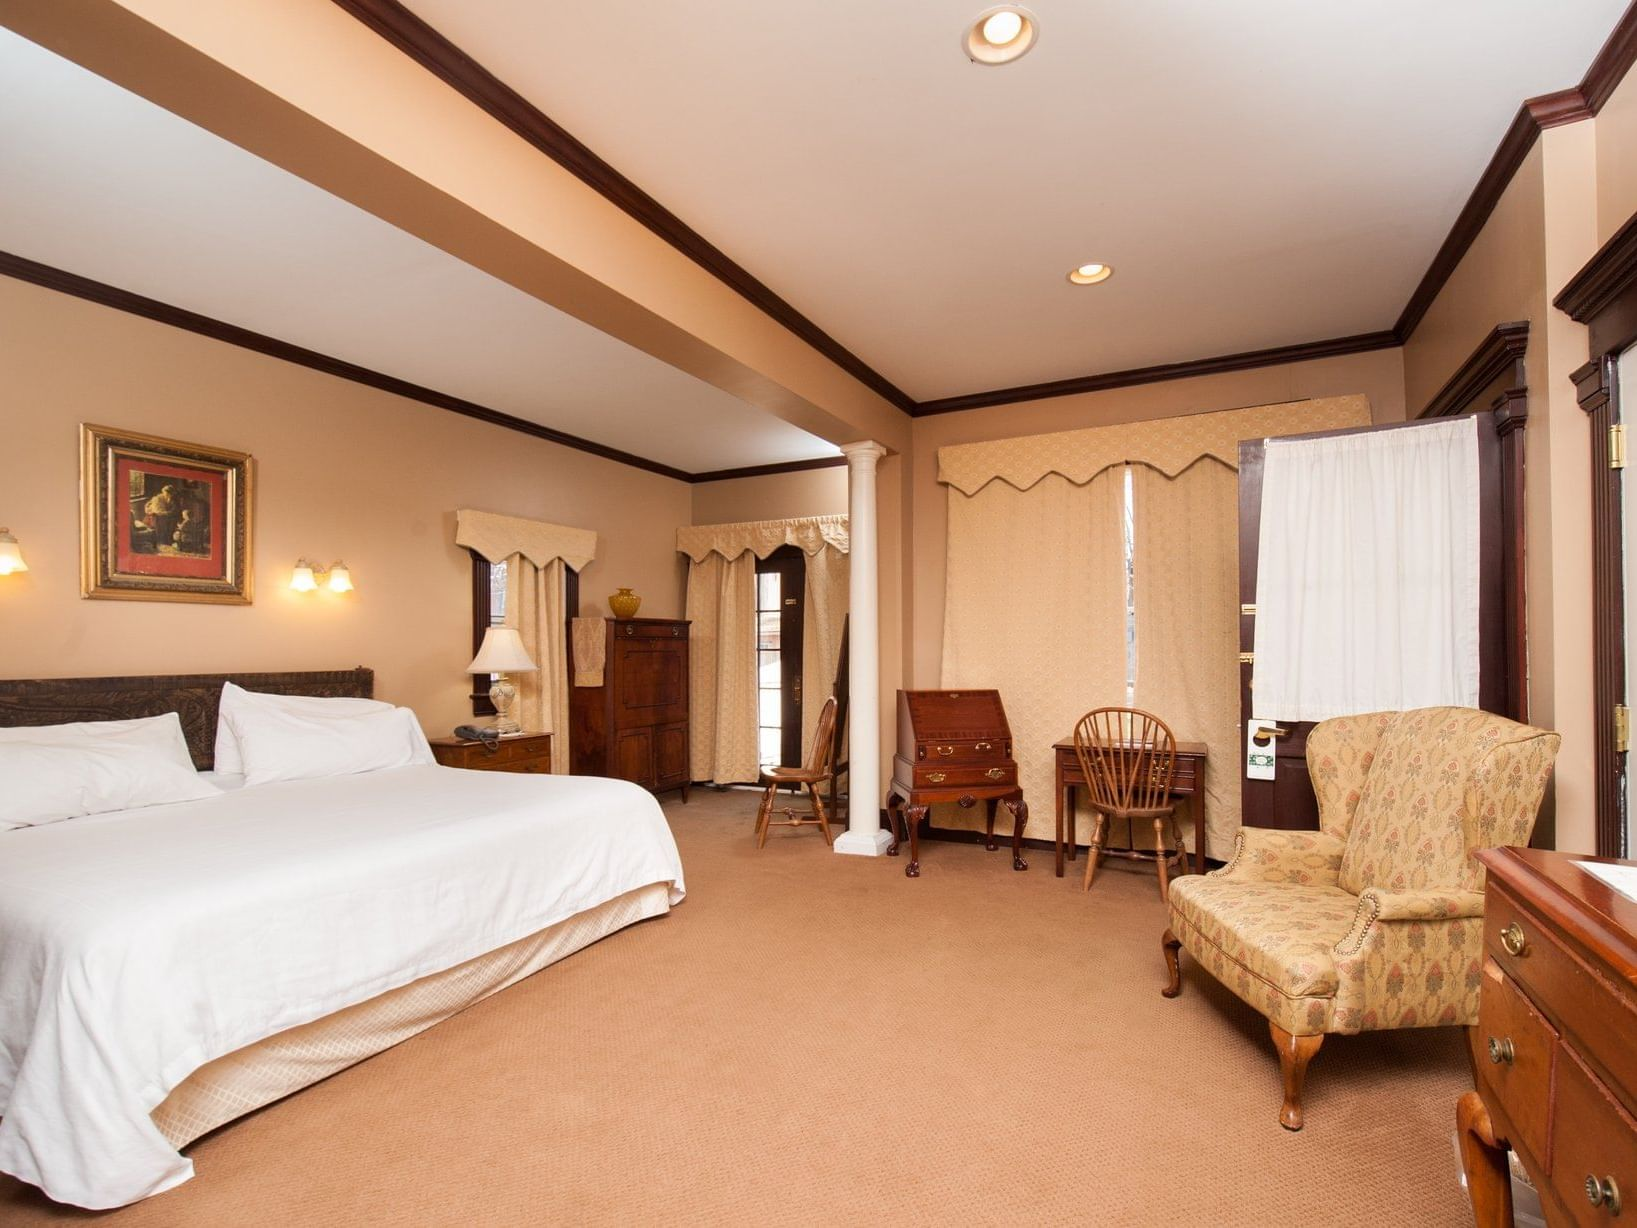 room with large bed, several sitting areas and dressers